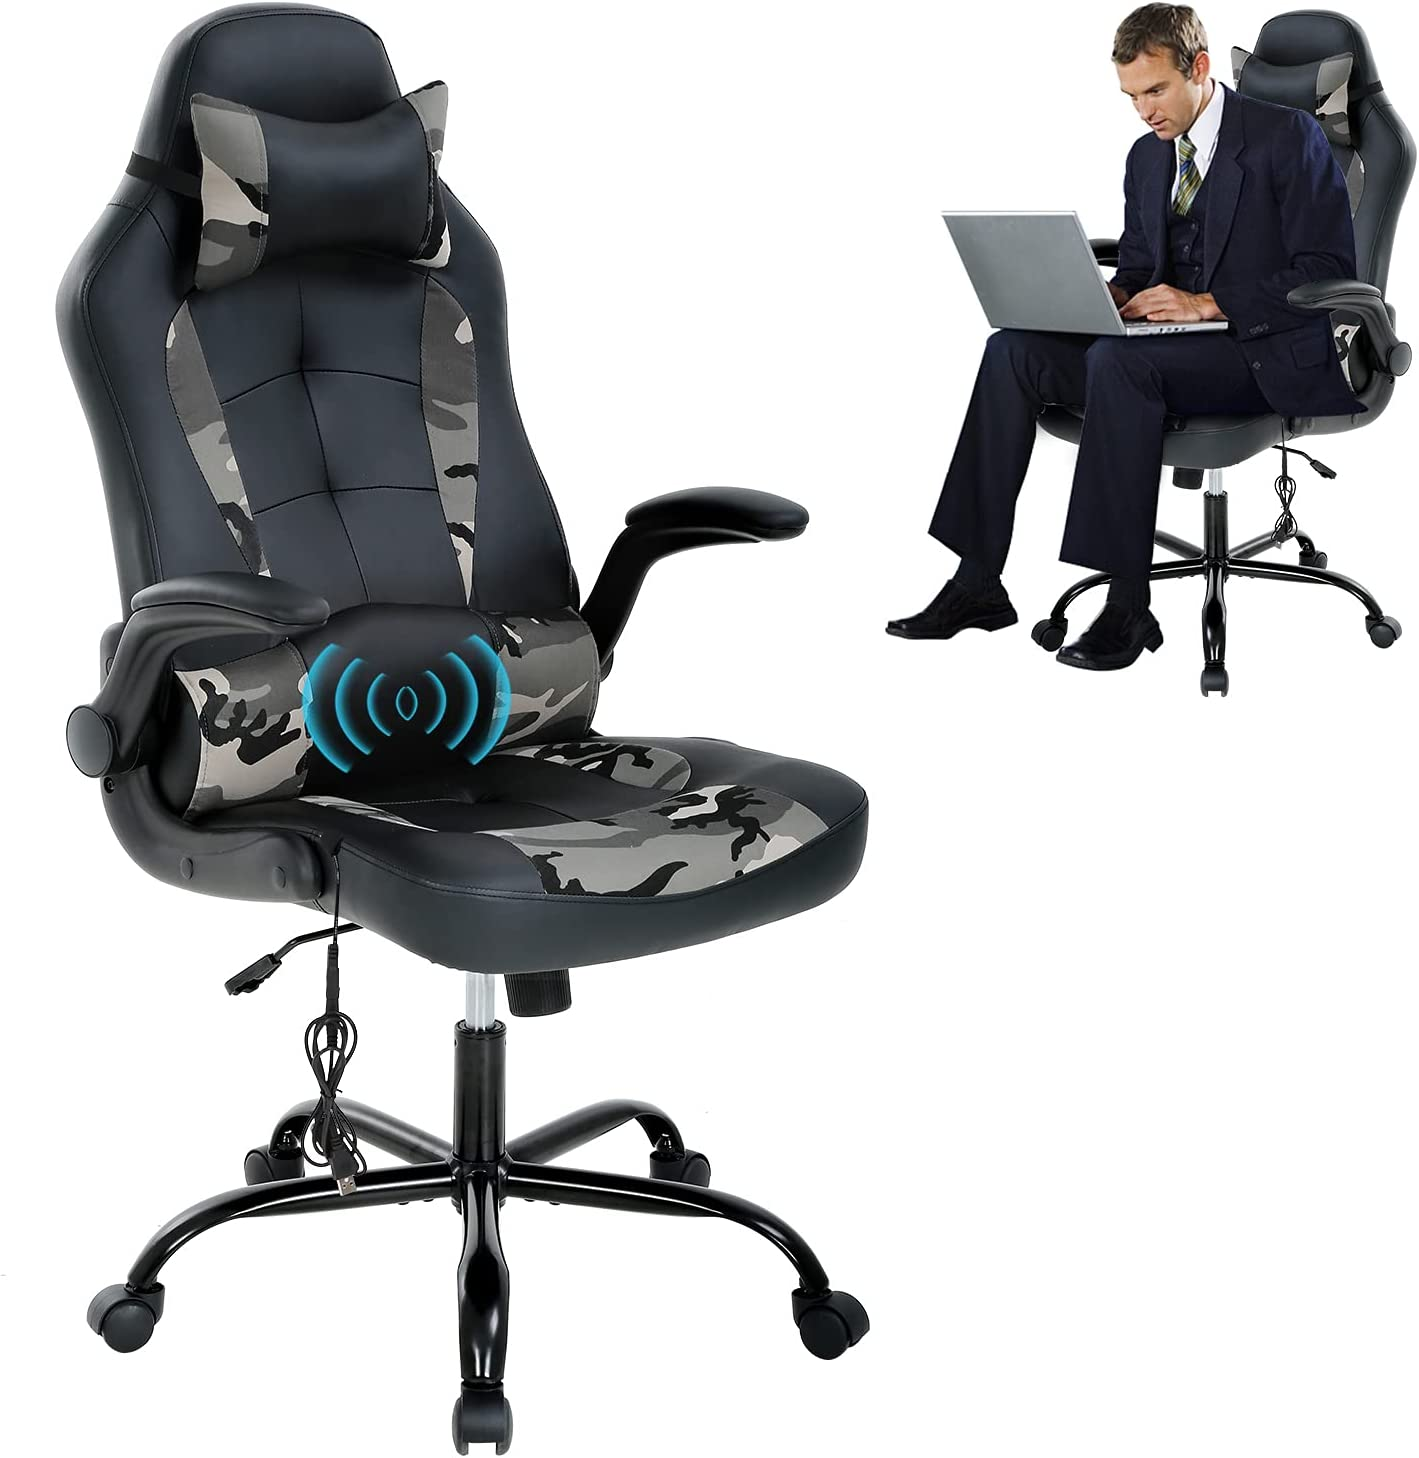 Office PC Gaming Chair Adjustable Flip and Raleigh Mall Headrest Fees free!! Up Armrest